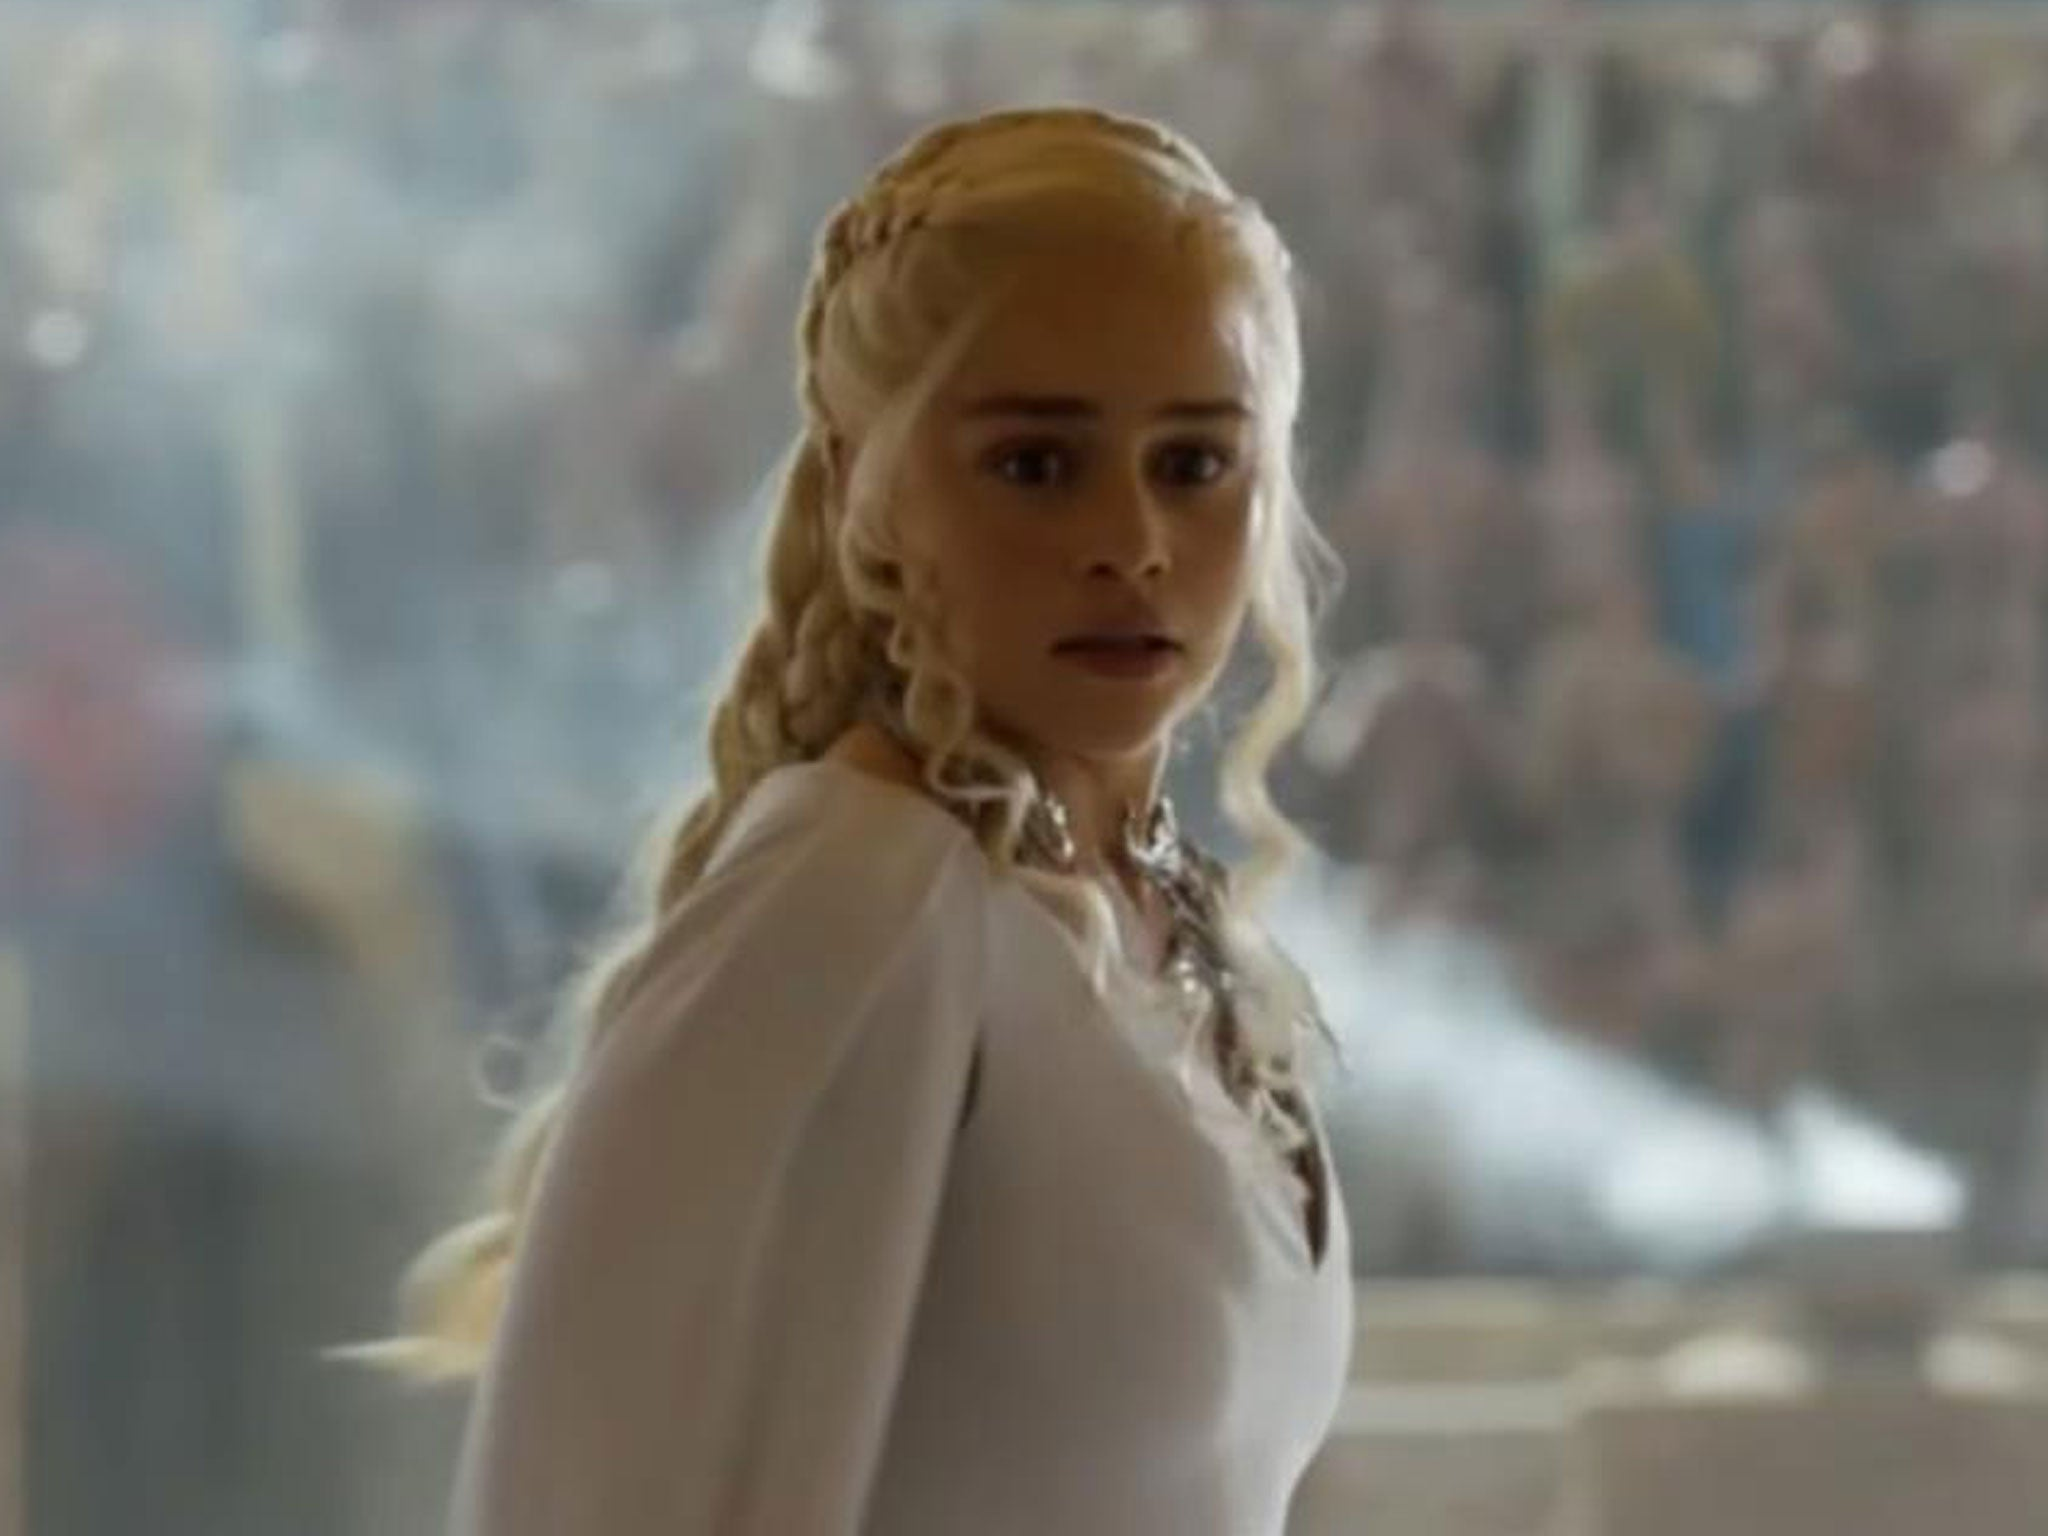 Game of Thrones season 5 trailer: New teaser sees Daenerys vow to ...: www.independent.co.uk/arts-entertainment/tv/news/game-of-thrones...